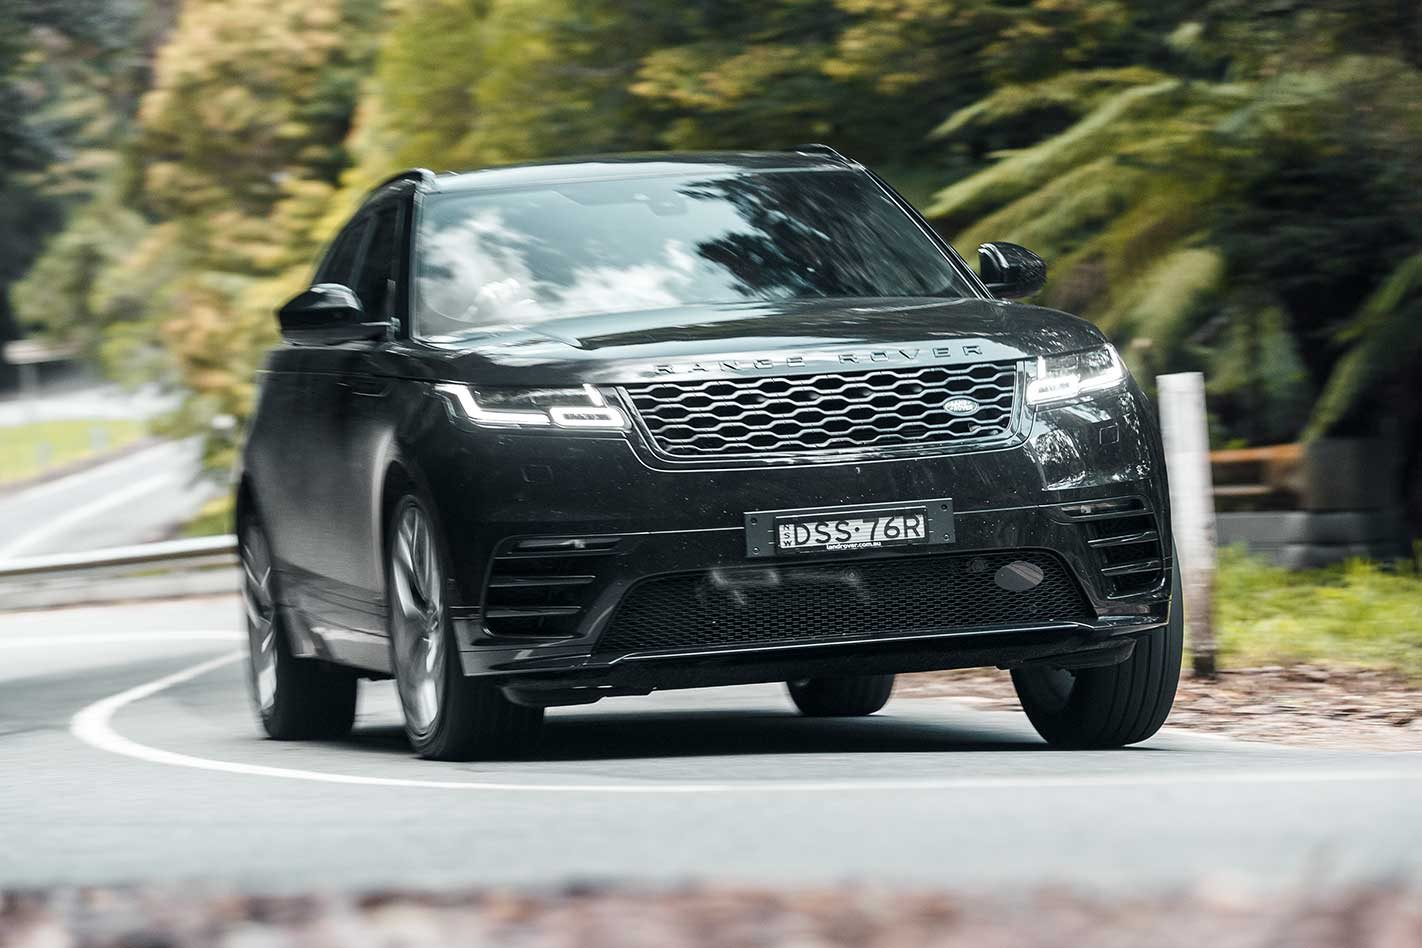 2019 Range Rover Velar SVR: News, Specs, Price >> 2019 Range Rover Velar P380 Performance Review